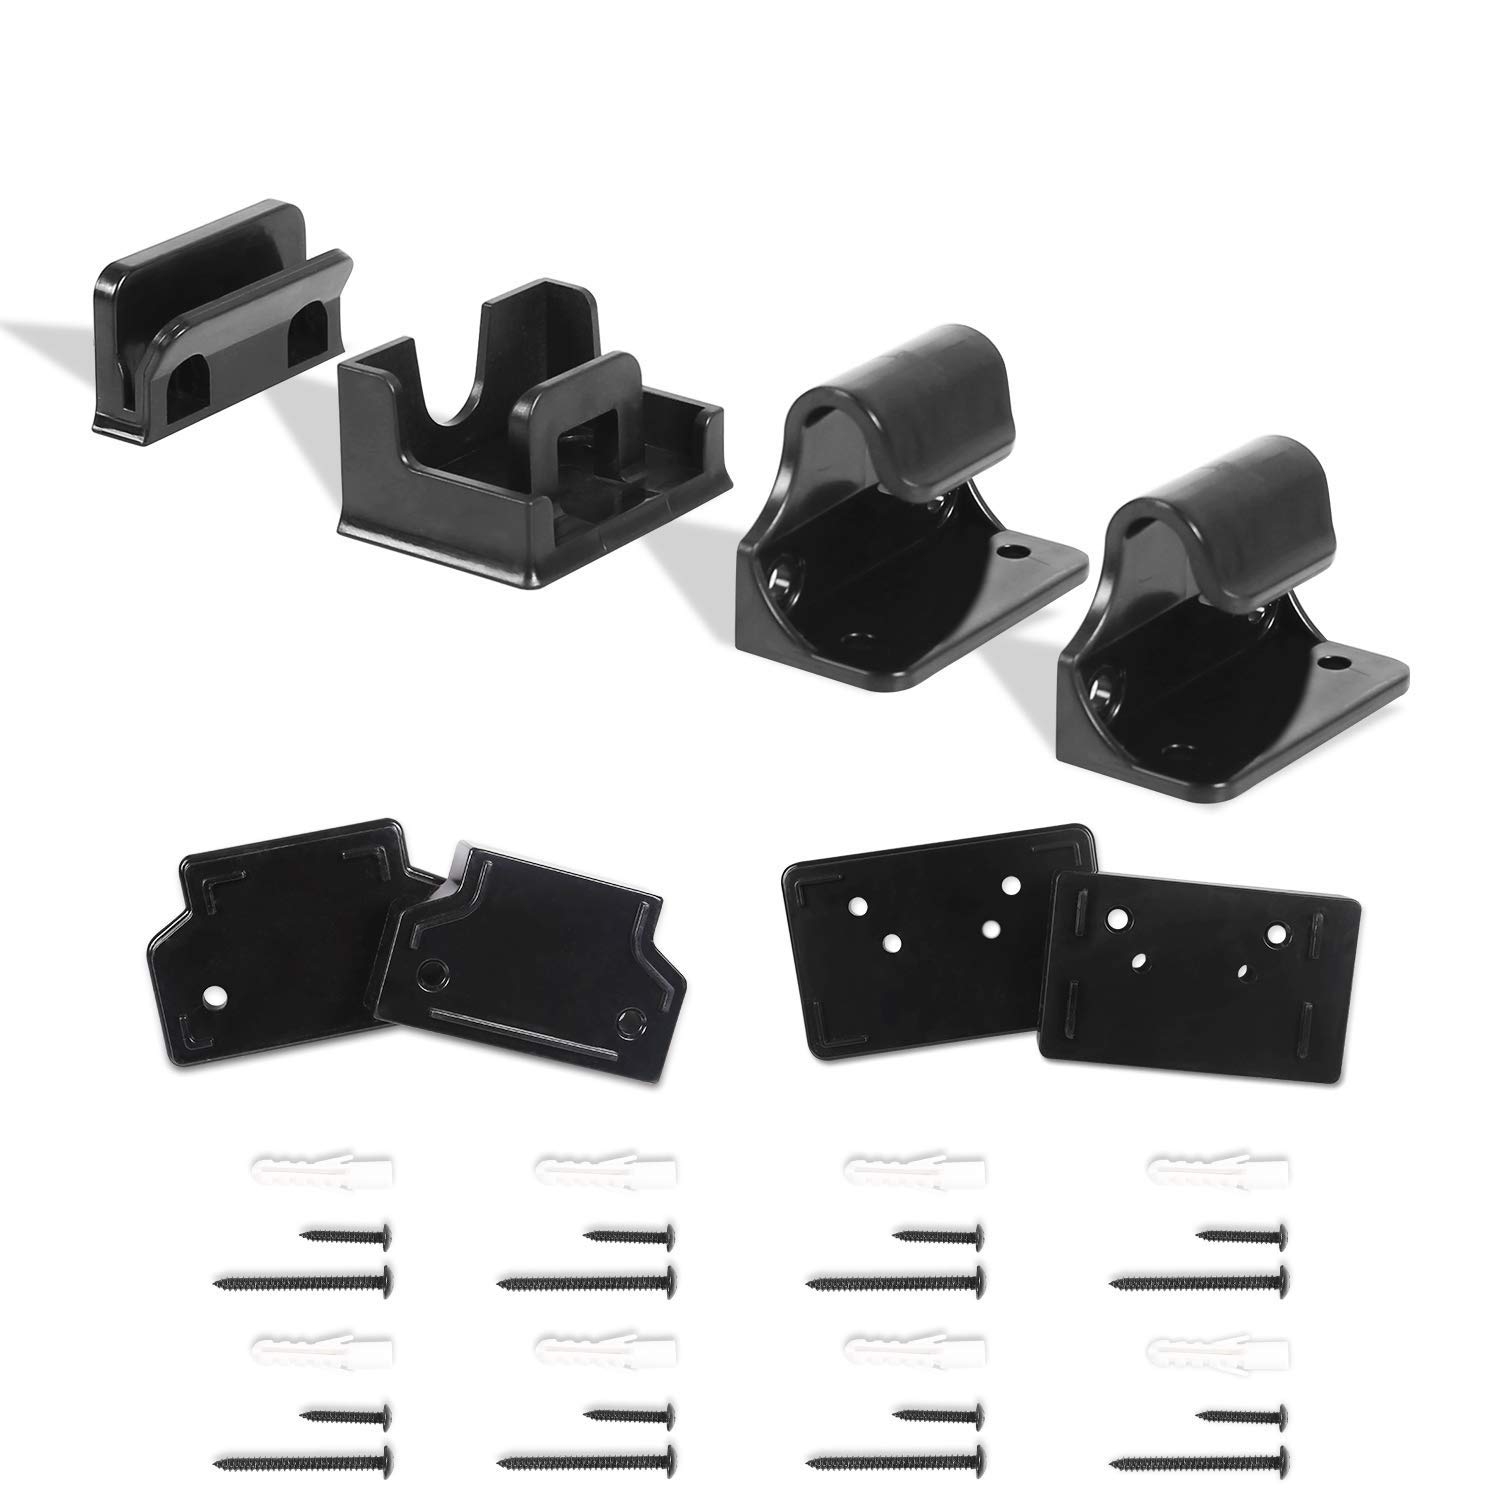 Babepai Hardware Replacement Parts Kit for Retractable Baby Gate, Full Set Wall Mounting Accessories Brackets Screws Wall Spacer Black